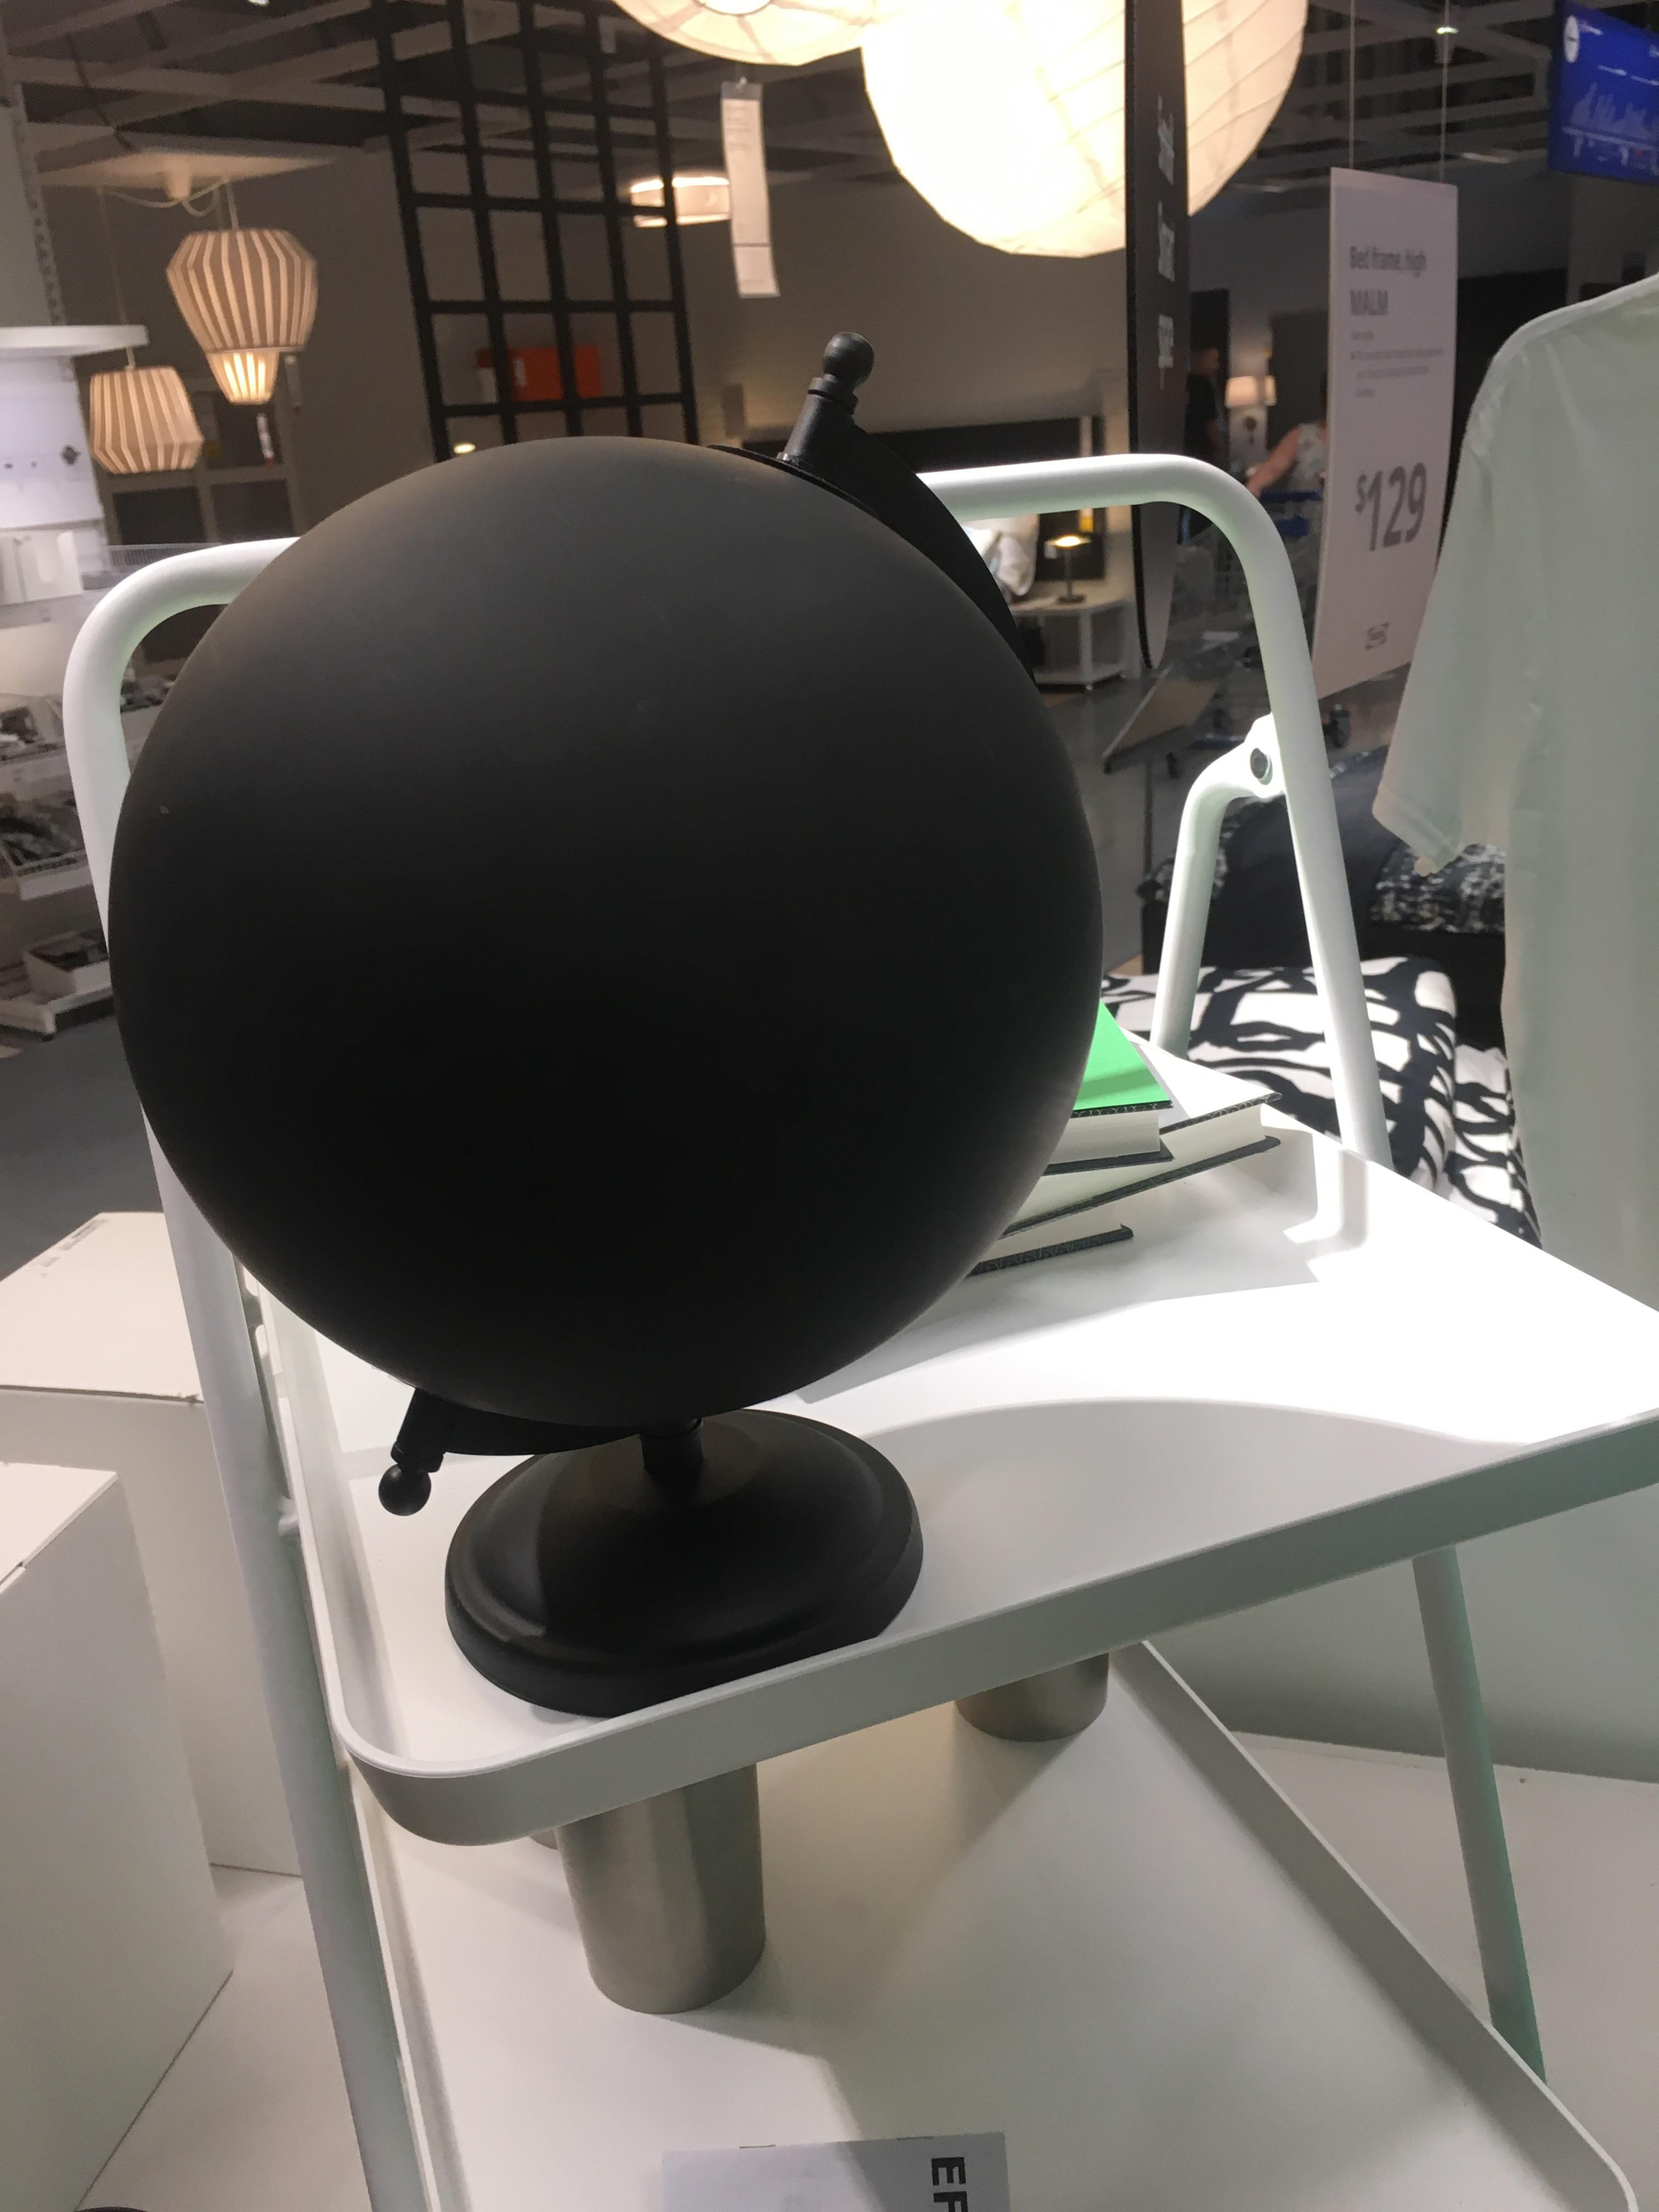 Just found out that IKEA carries a globe of the Earth's surface in 2050.